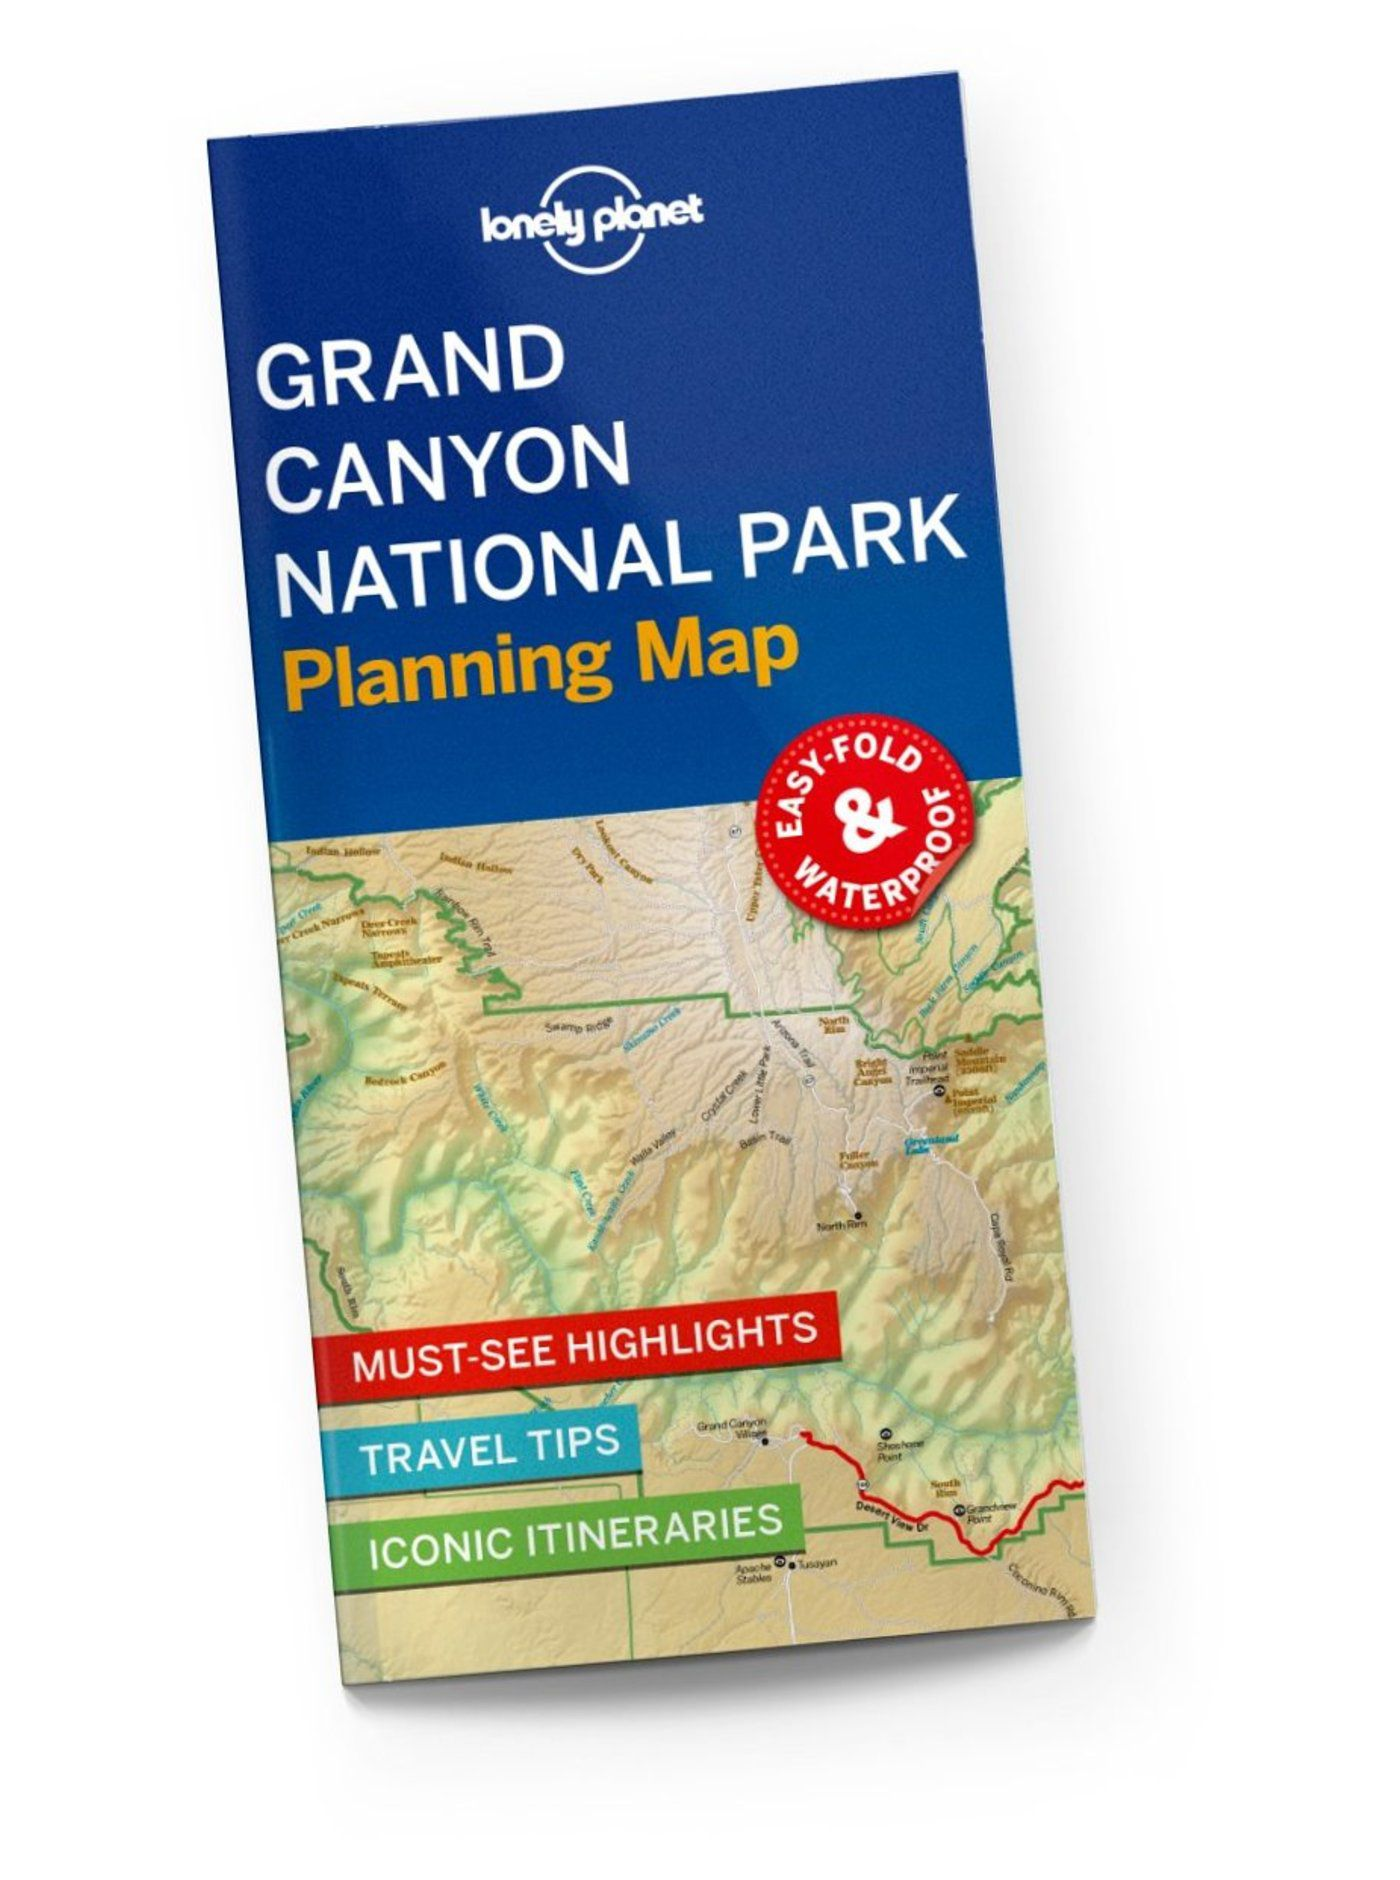 Grand Canyon National Park Planning Map